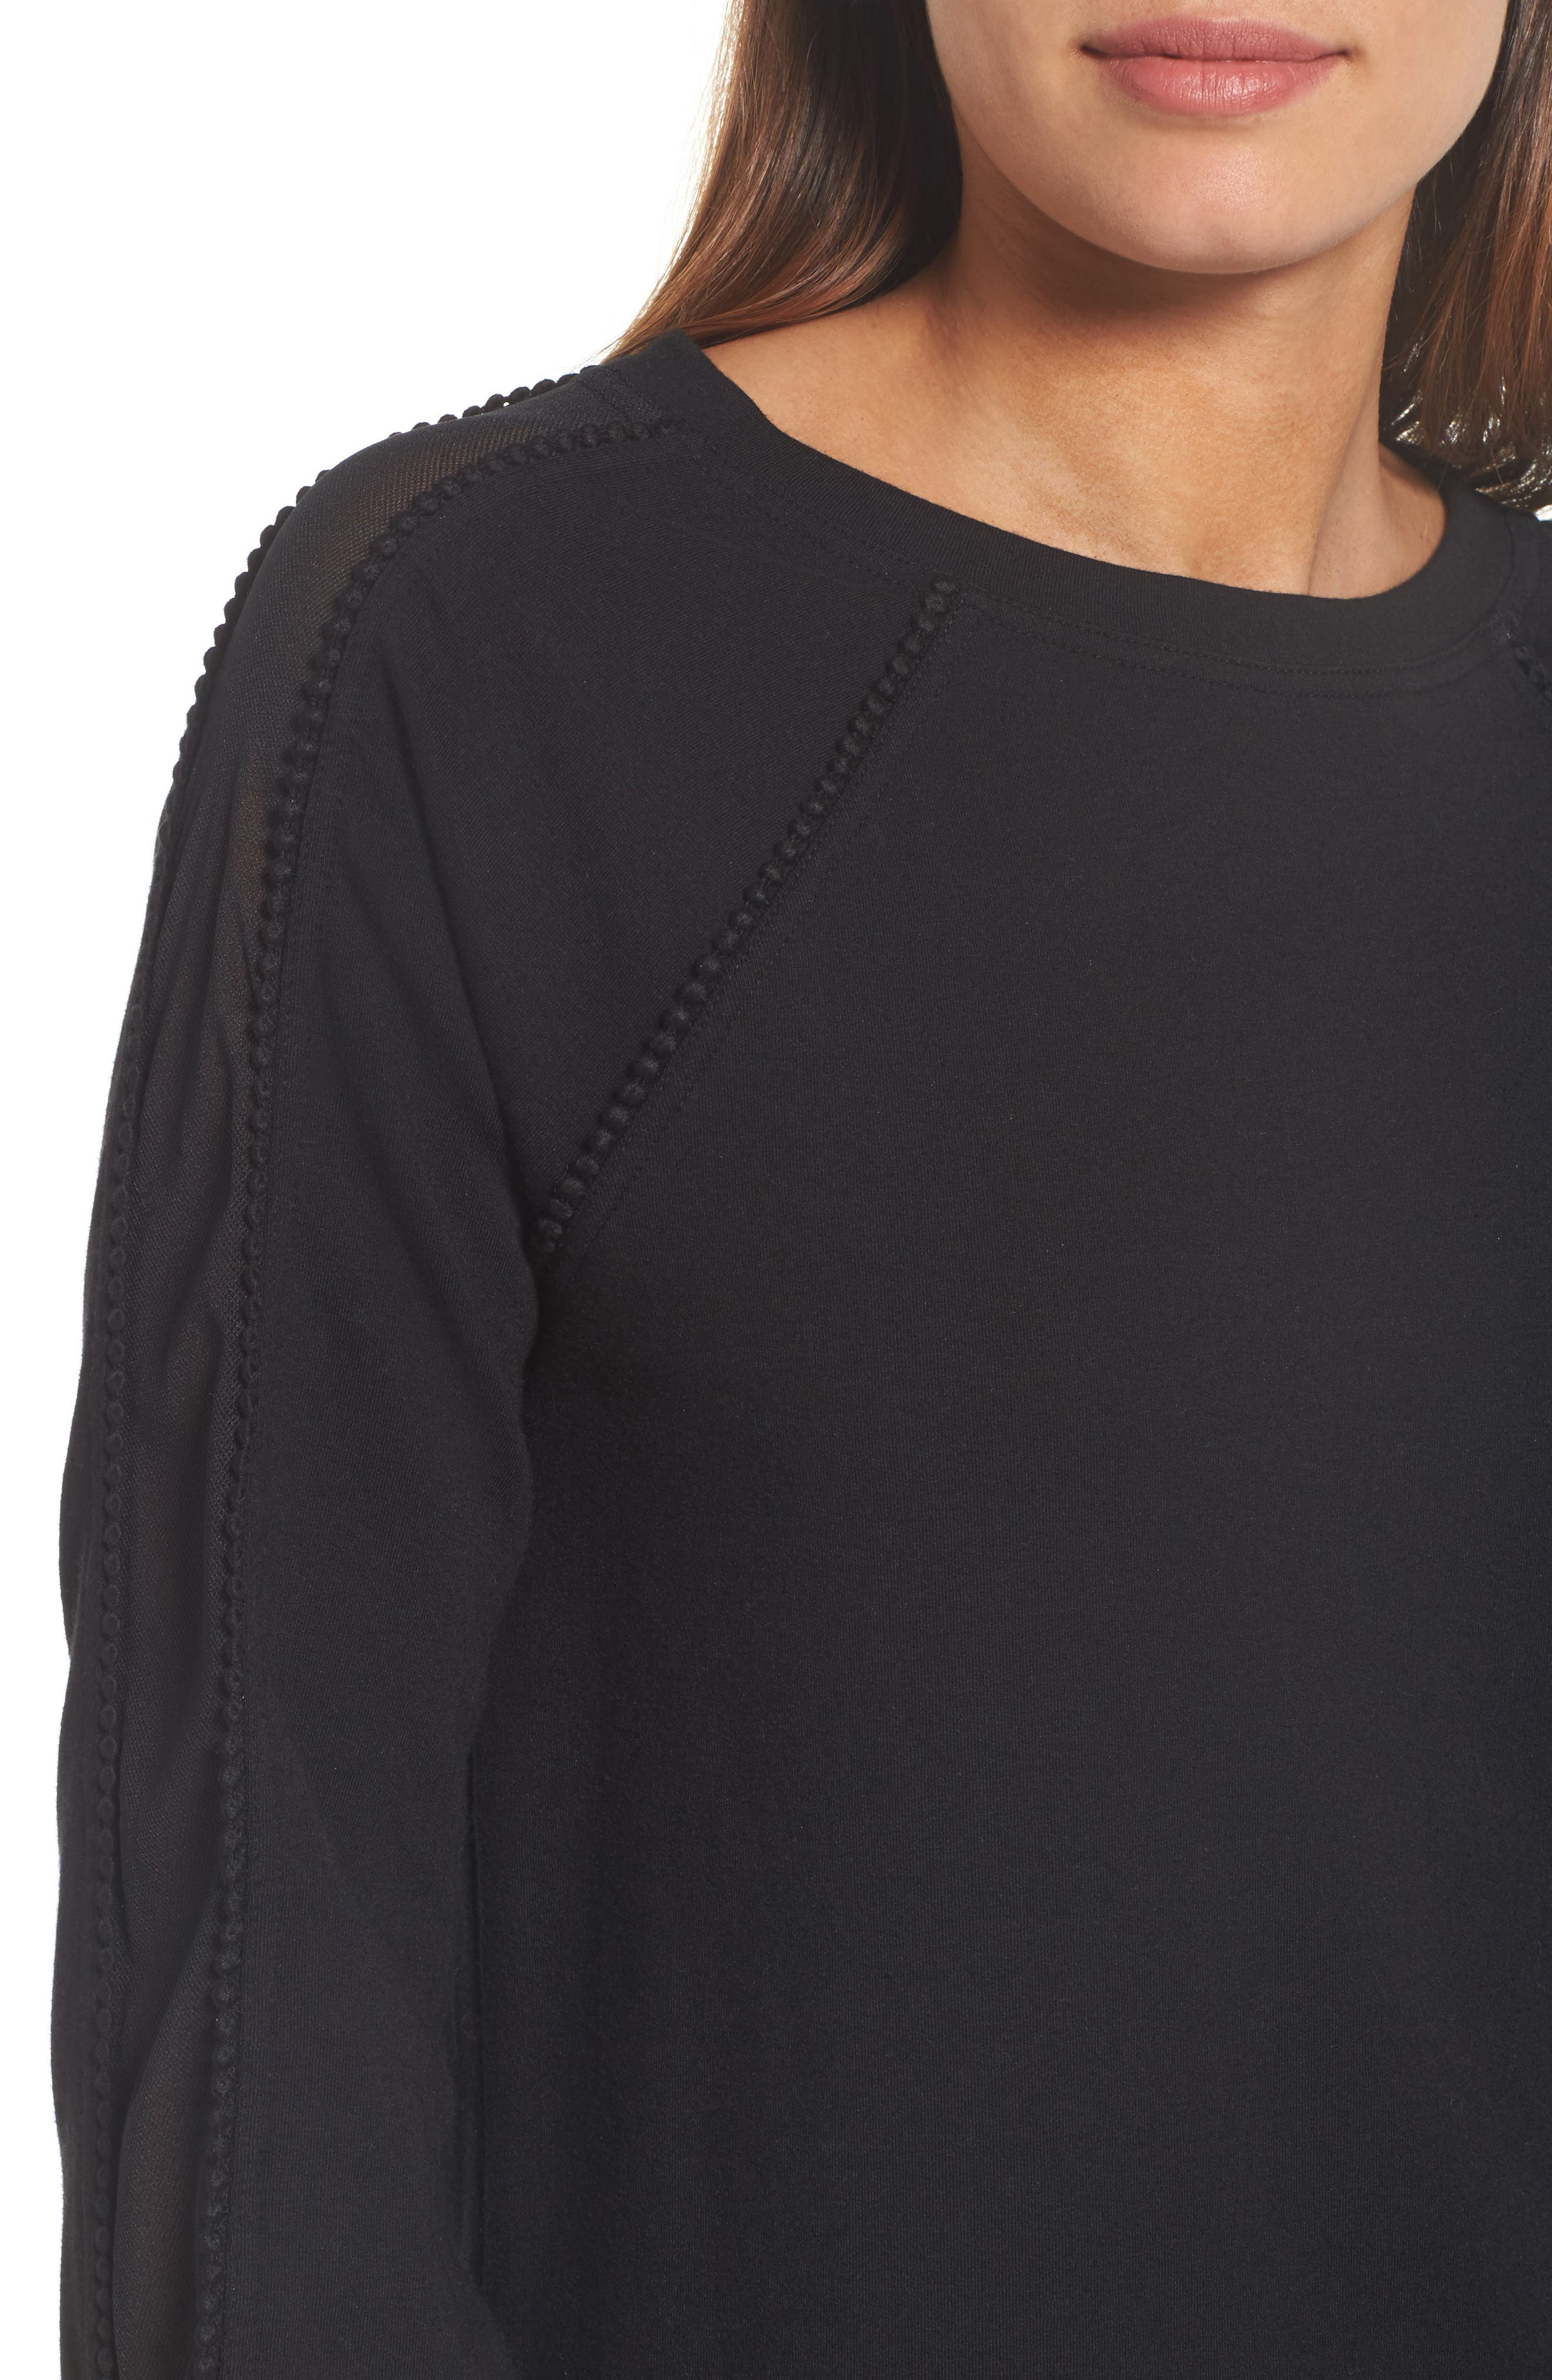 Mesh Inset Sleeve Sweatshirt,                             Alternate thumbnail 4, color,                             Black